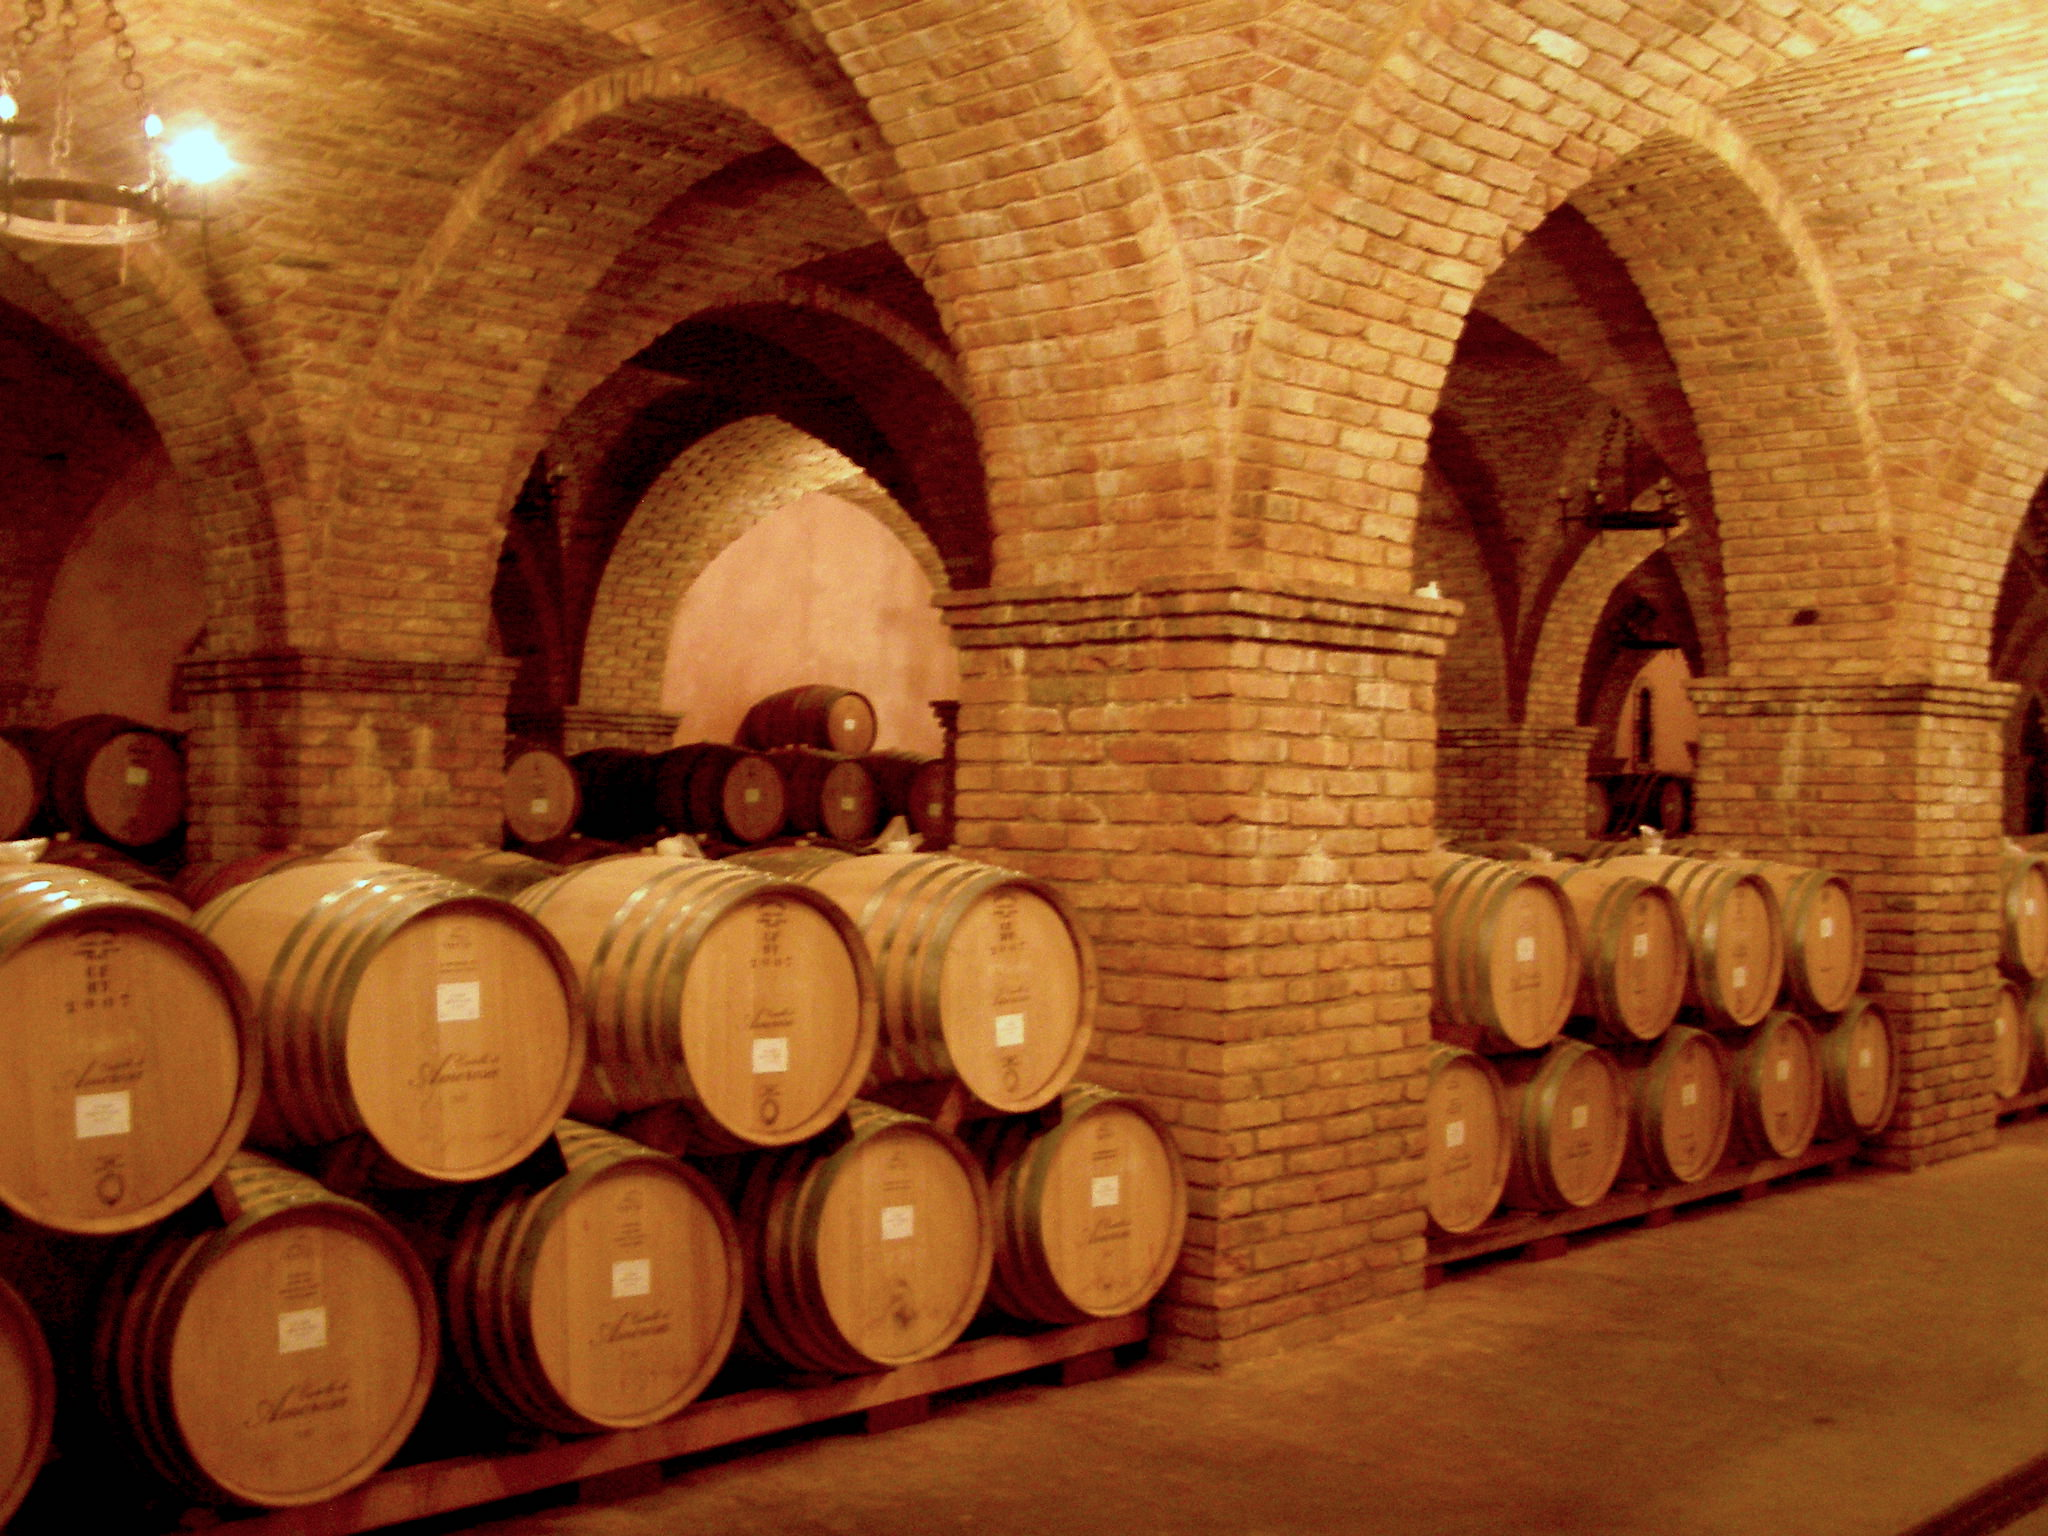 Wine Barrels at Castello di Amorosa | Dawn Devine • davinadevine.me